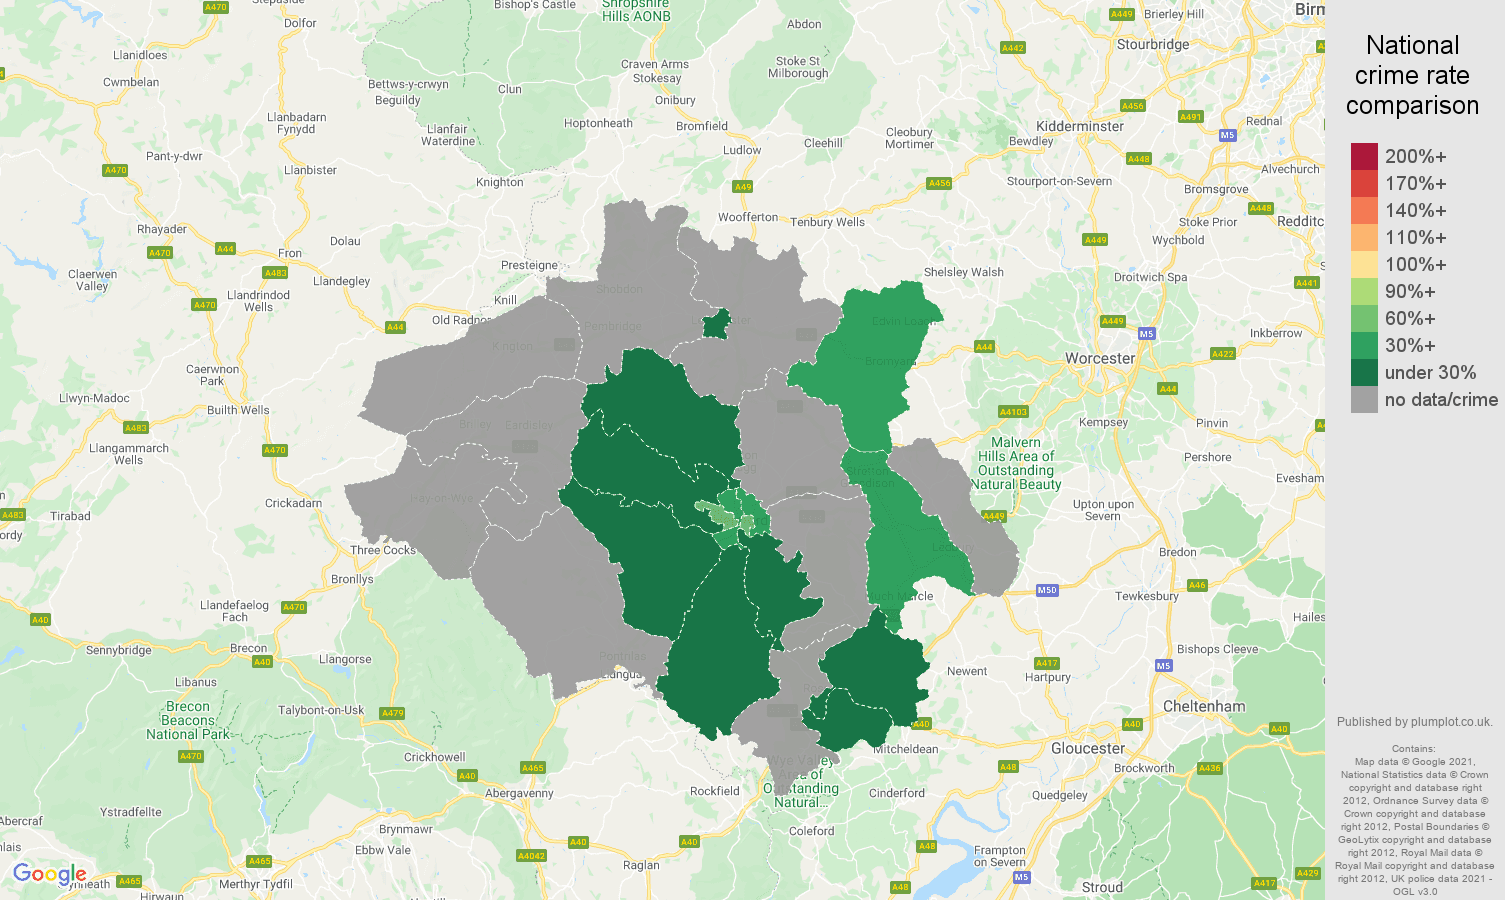 Hereford robbery crime rate comparison map